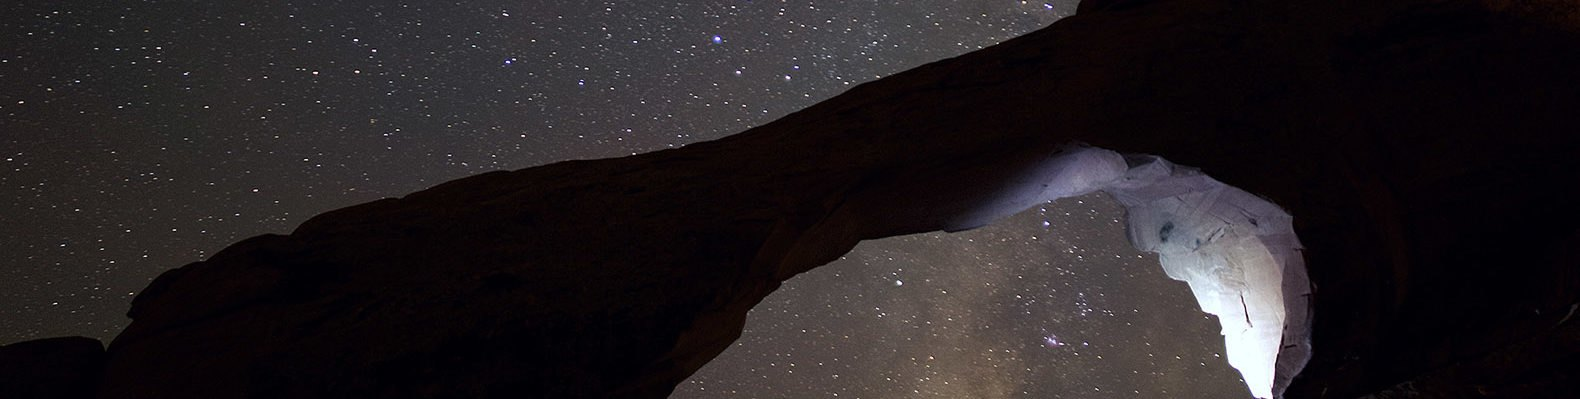 A natural arch formation against a starry sky